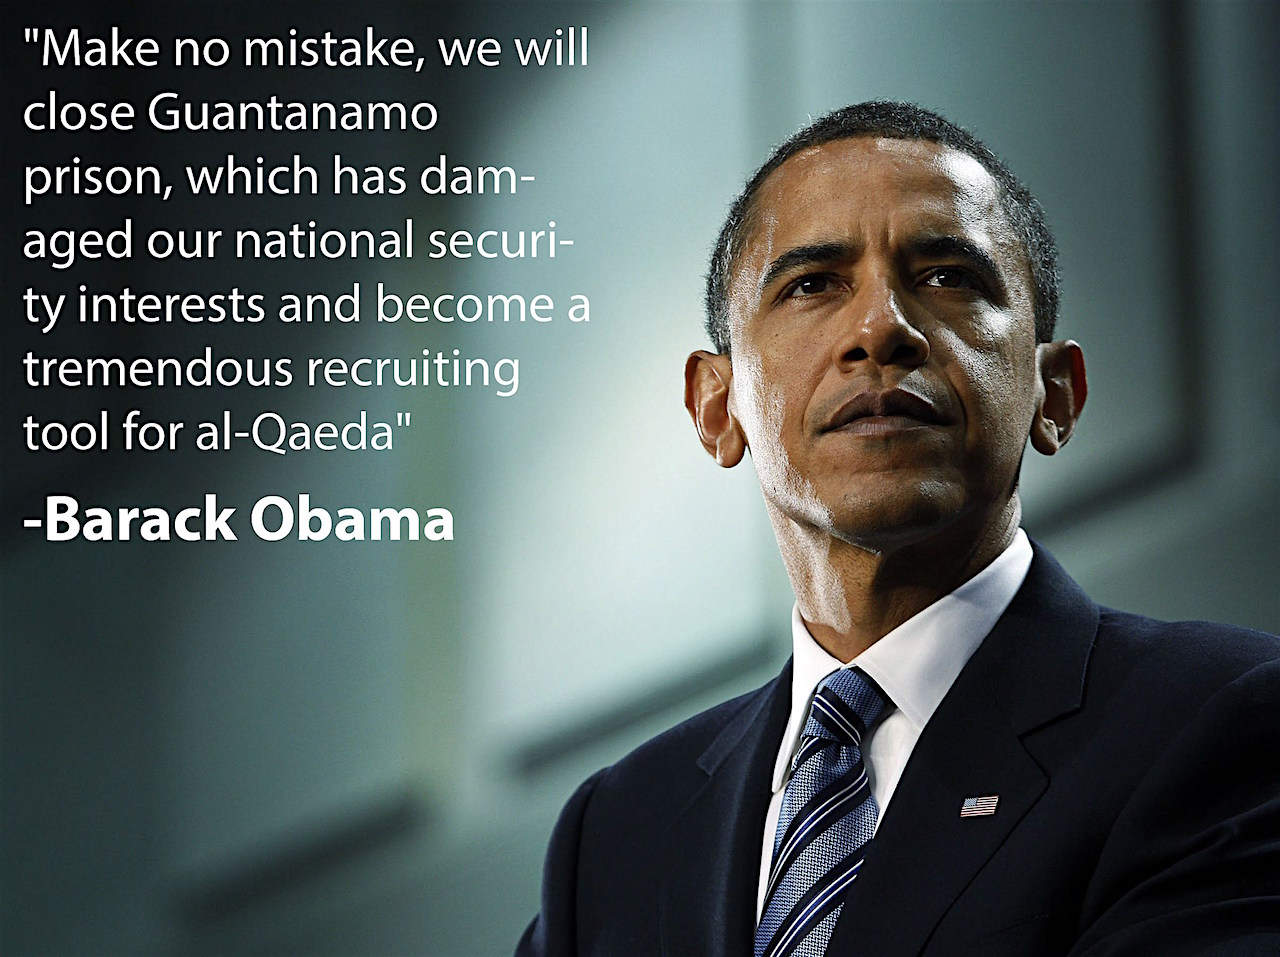 President Obama and a quote about Guantanamo from a speech he made on January 5, 2010.